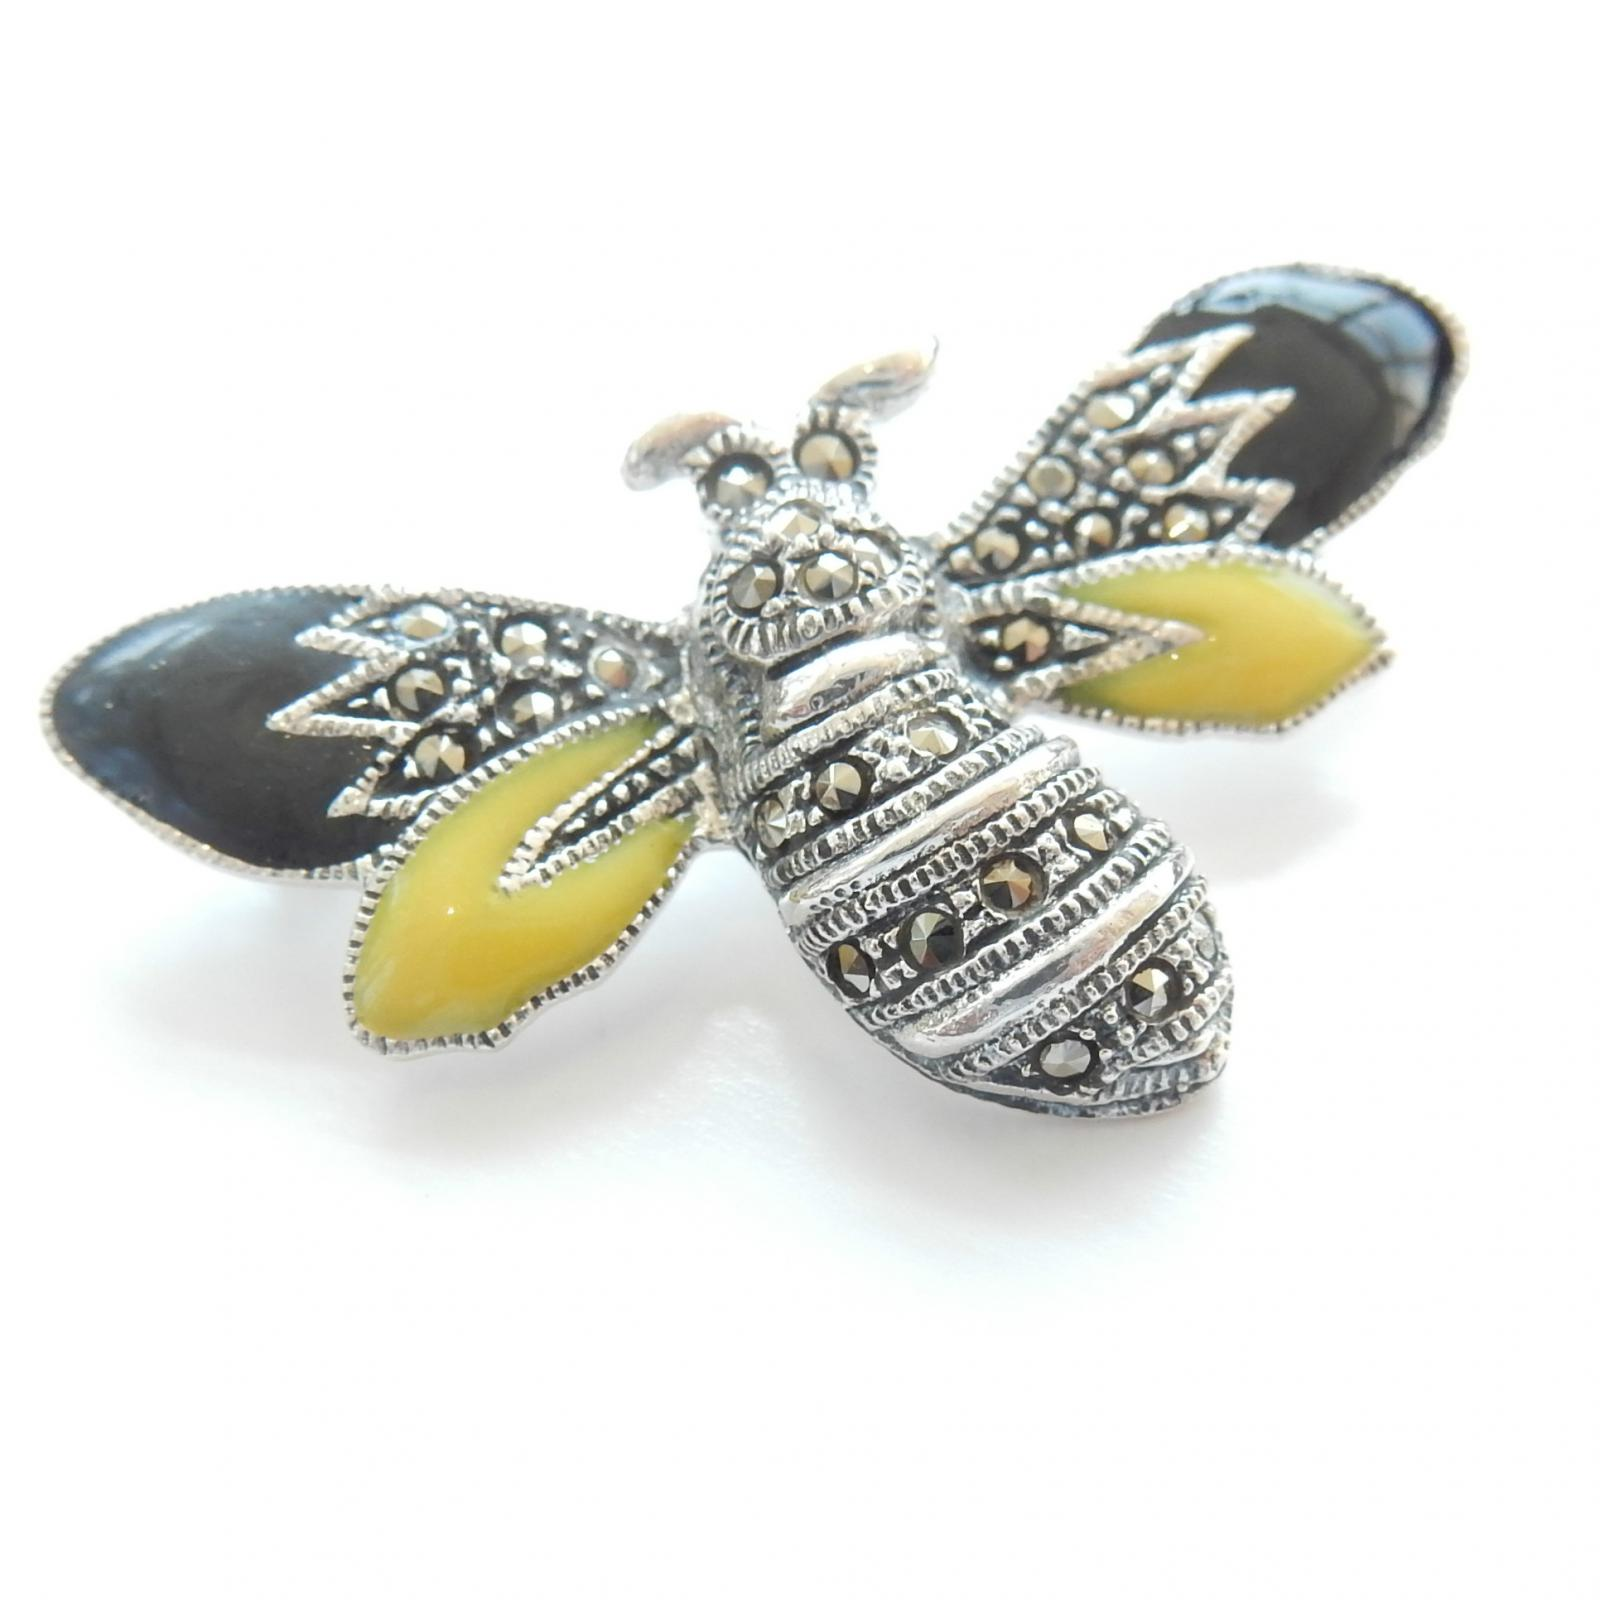 Photo of Silver & Enamel Bumble Bee Brooch